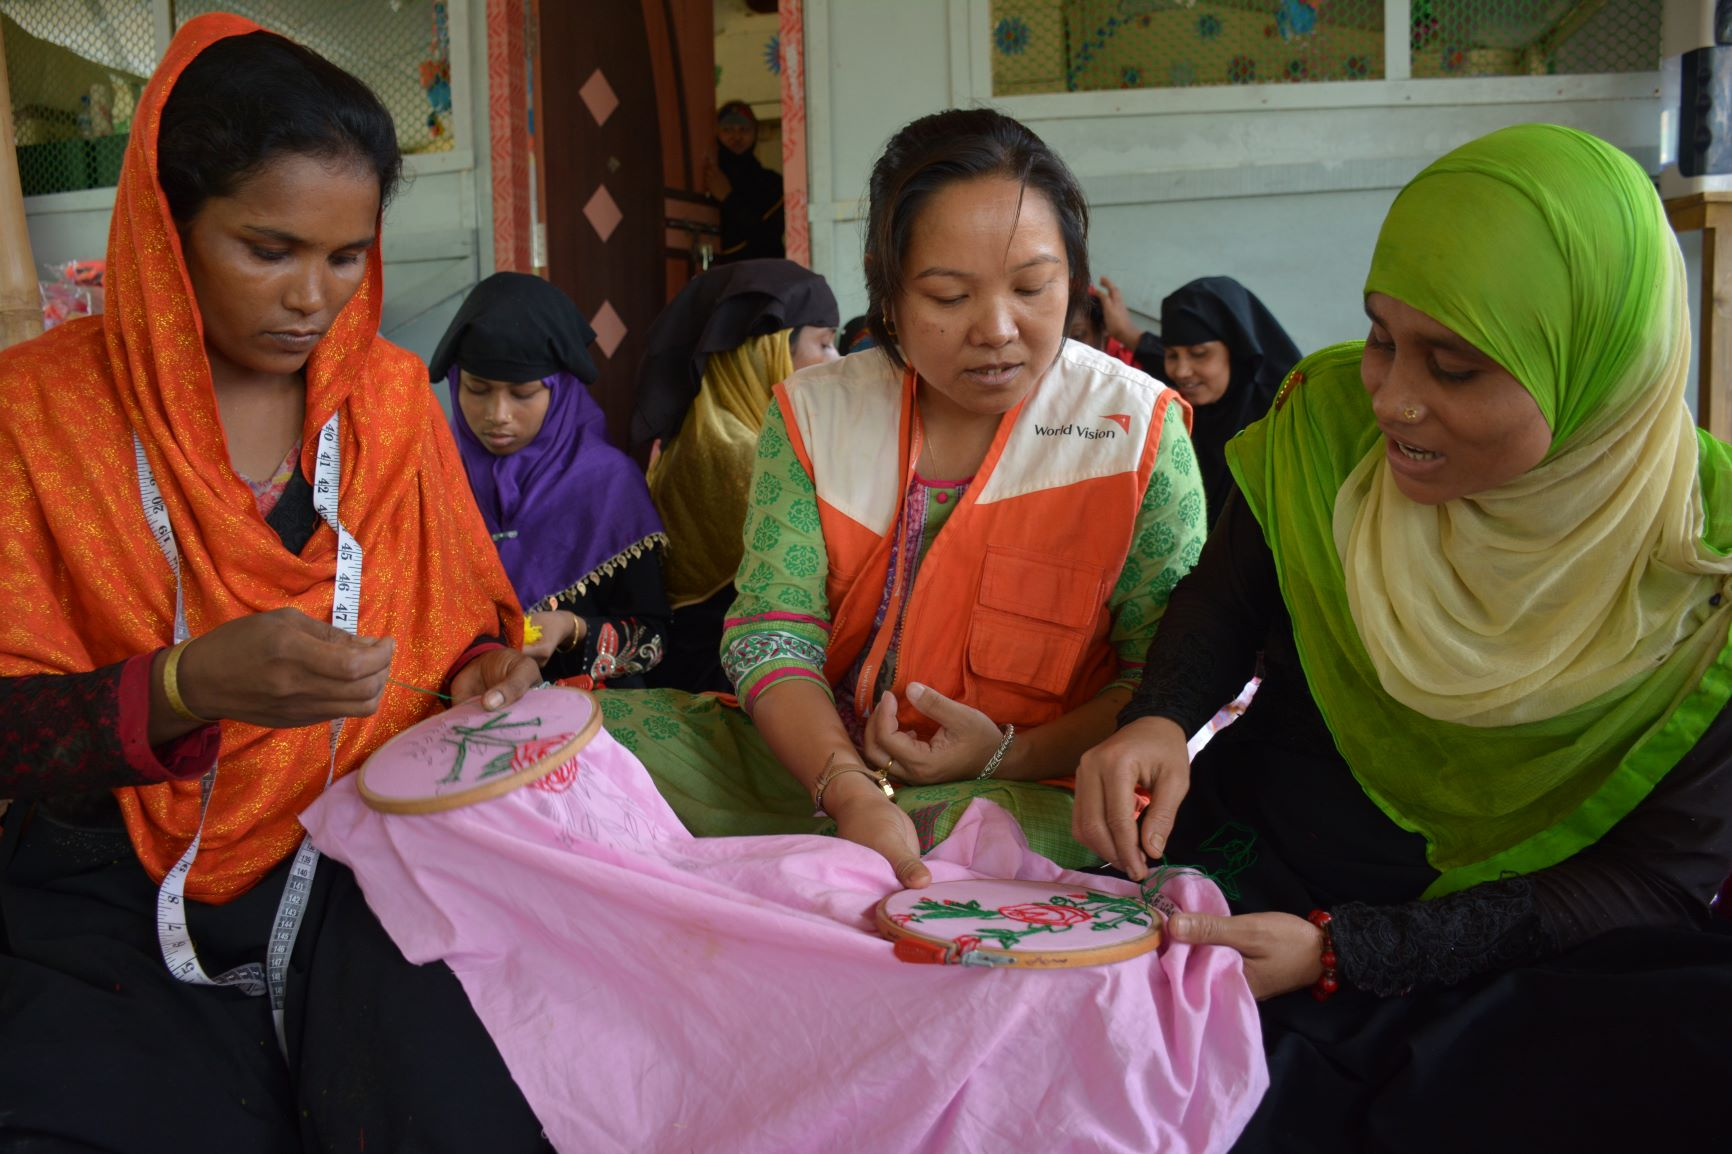 Sharly Mayshew Prue—Award-winning visionary teaches Rohingya women new skills